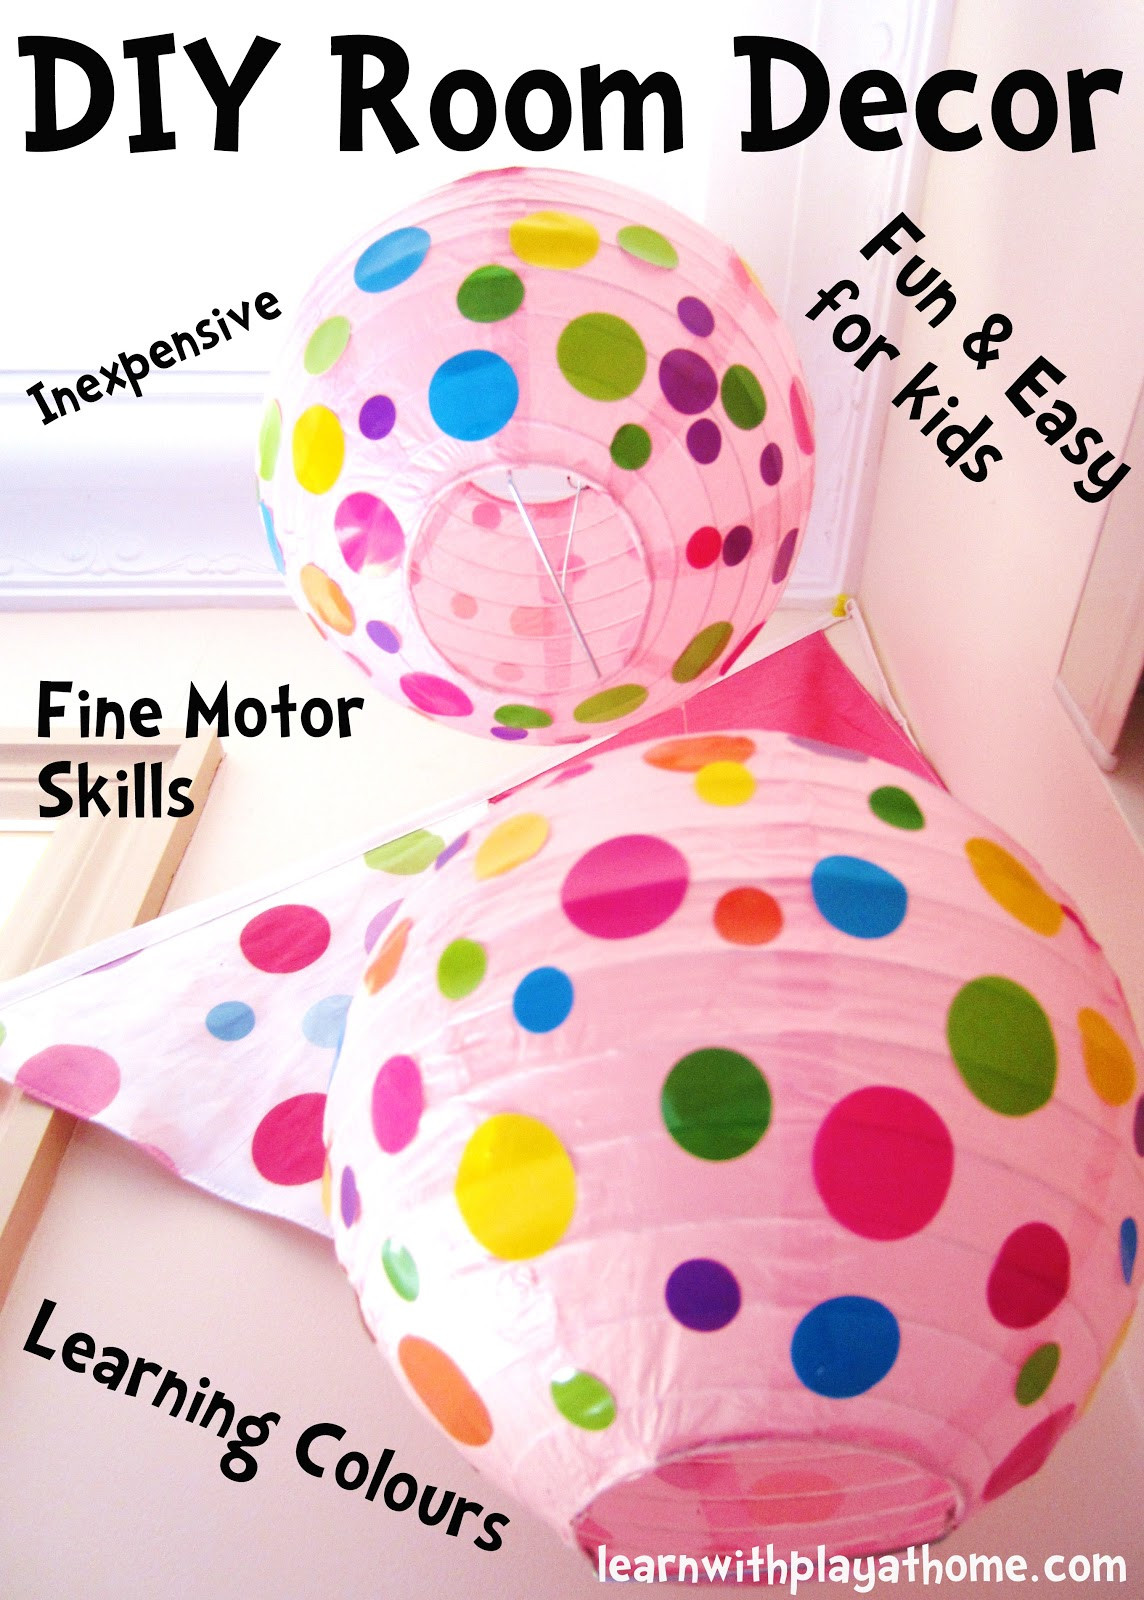 Best ideas about DIY Kids Room Decorations . Save or Pin Learn with Play at Home DIY Kids Room Decor Spotty Lanterns Now.